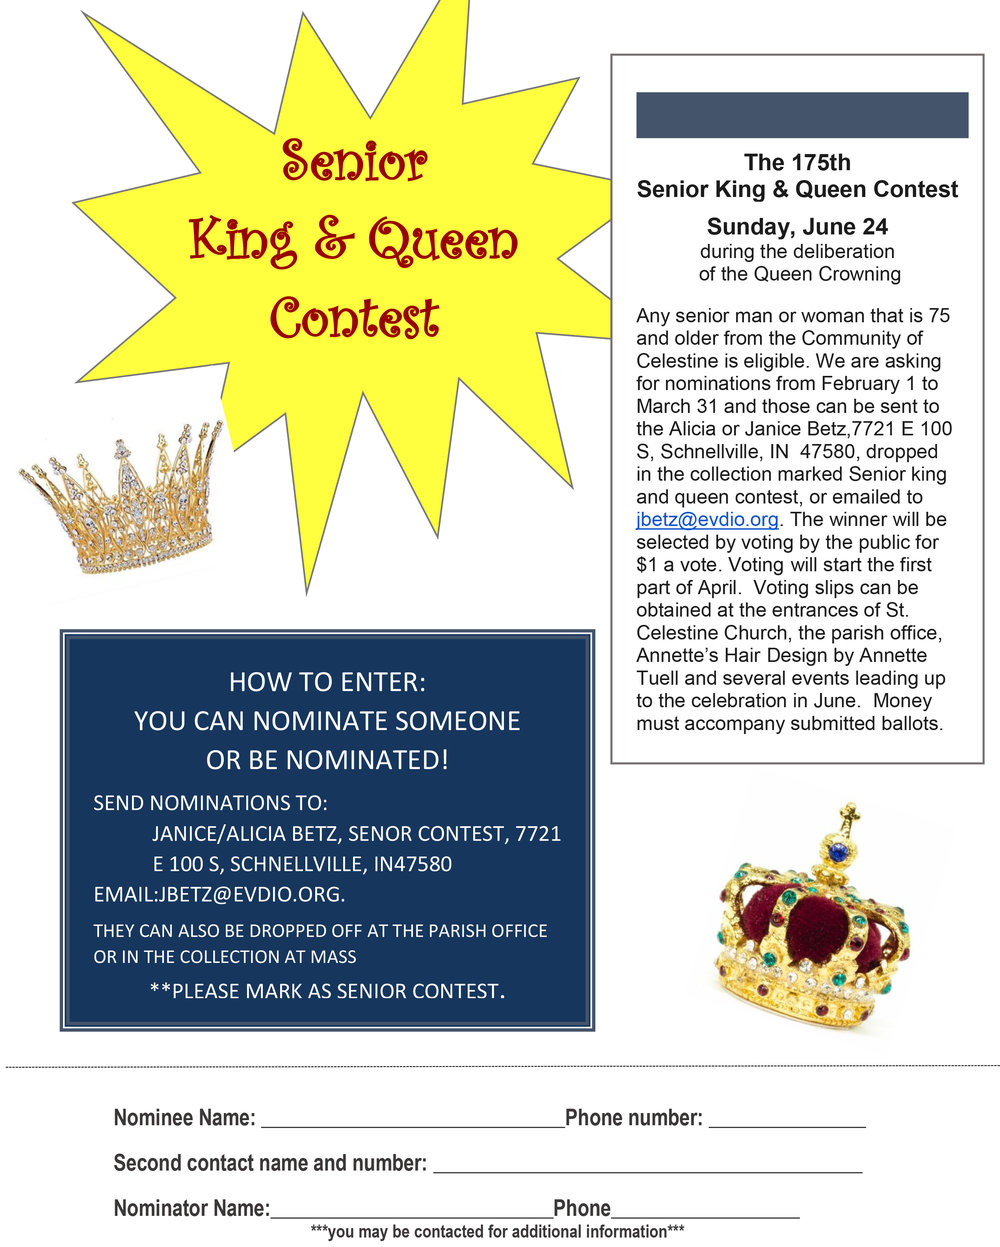 Senior-citizen-contest.jpg